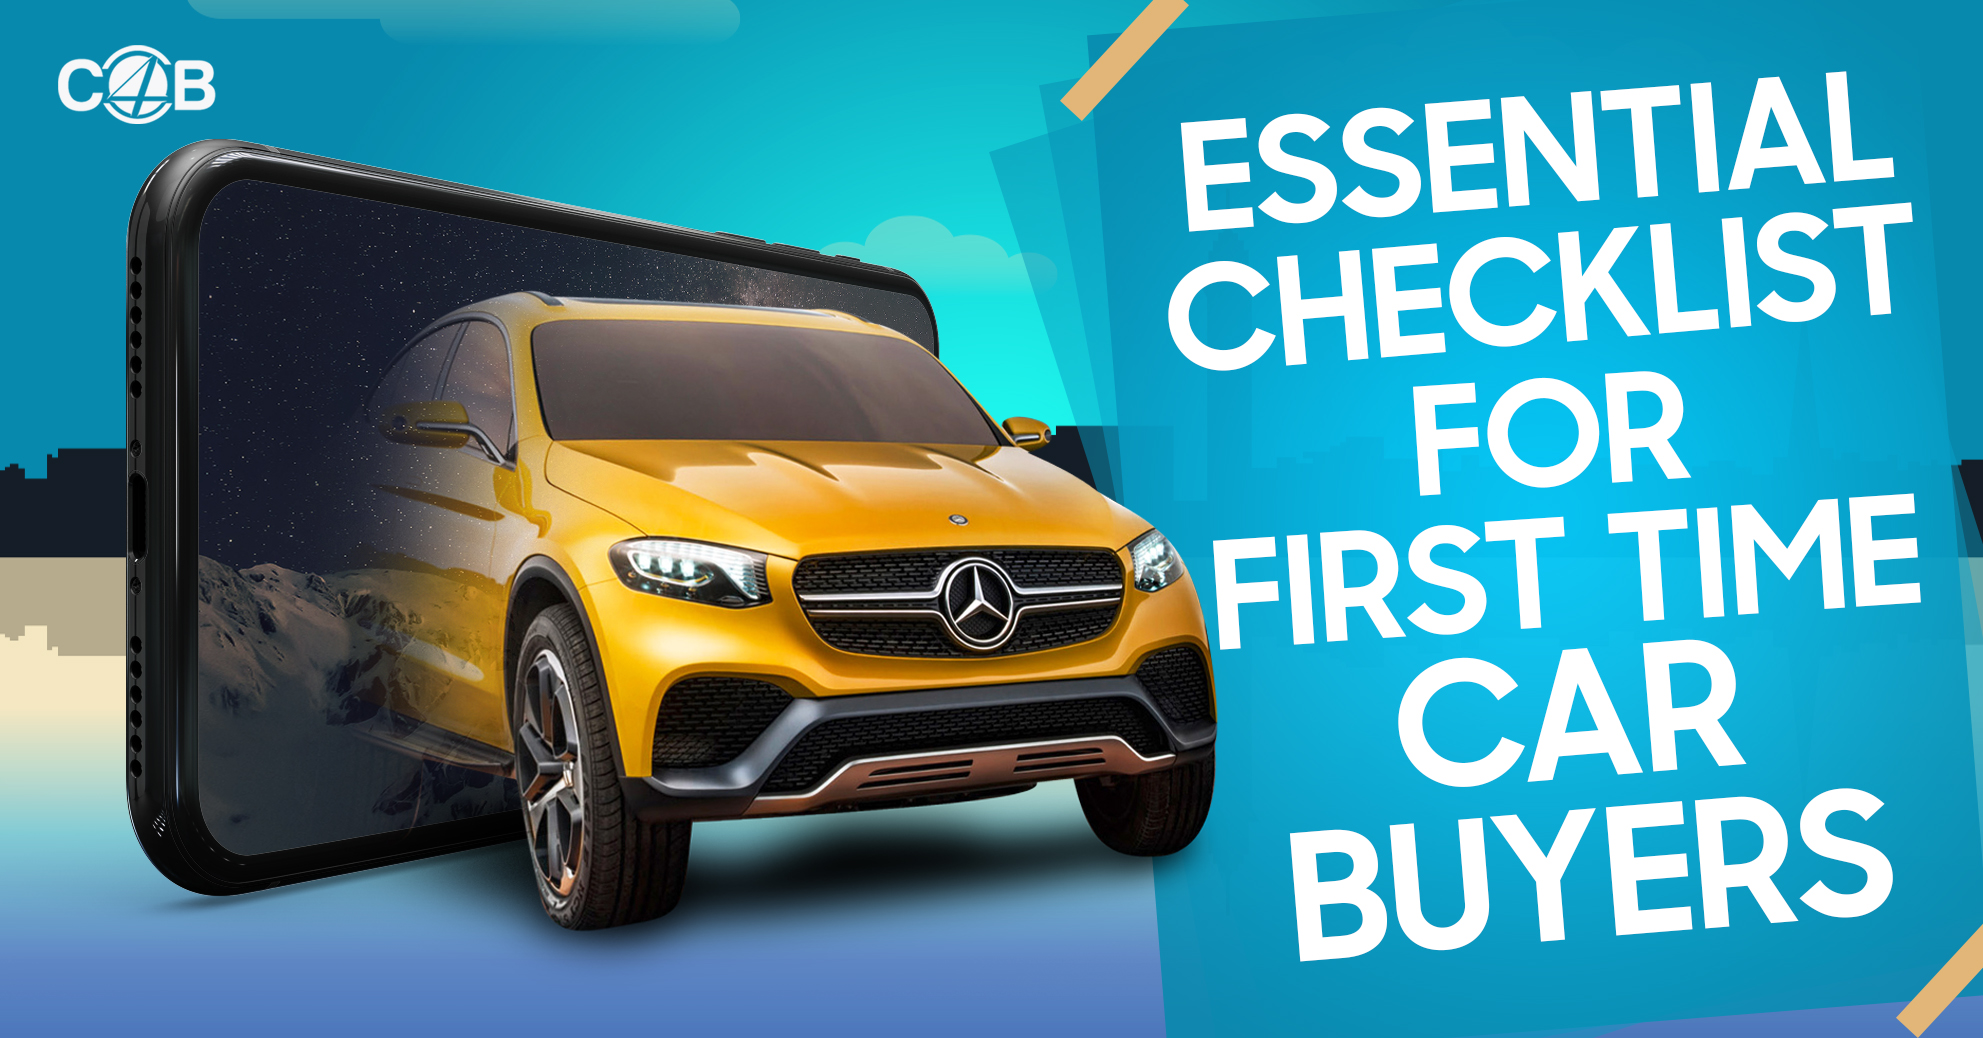 13 Essential Checklist for First-time Car Buyers - Money Clinic